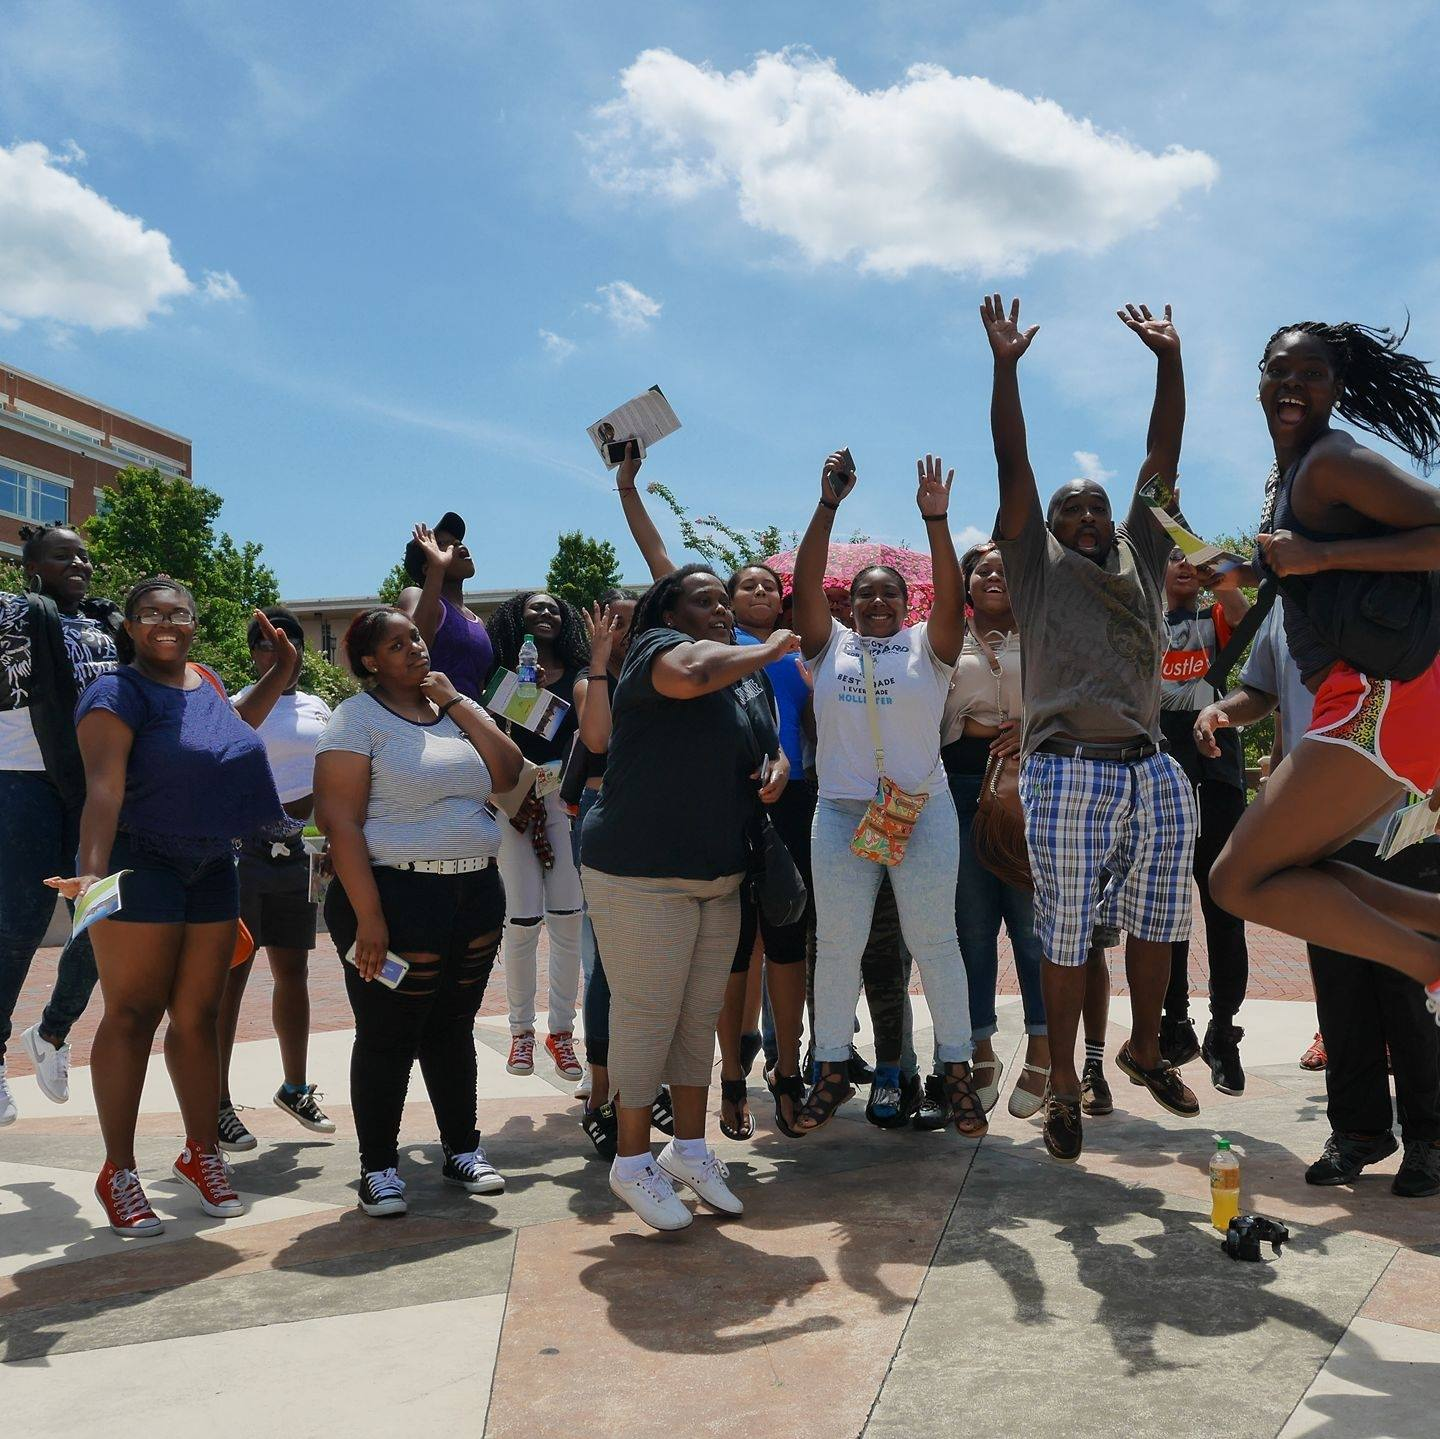 Positive Changes college trip for youth, community action